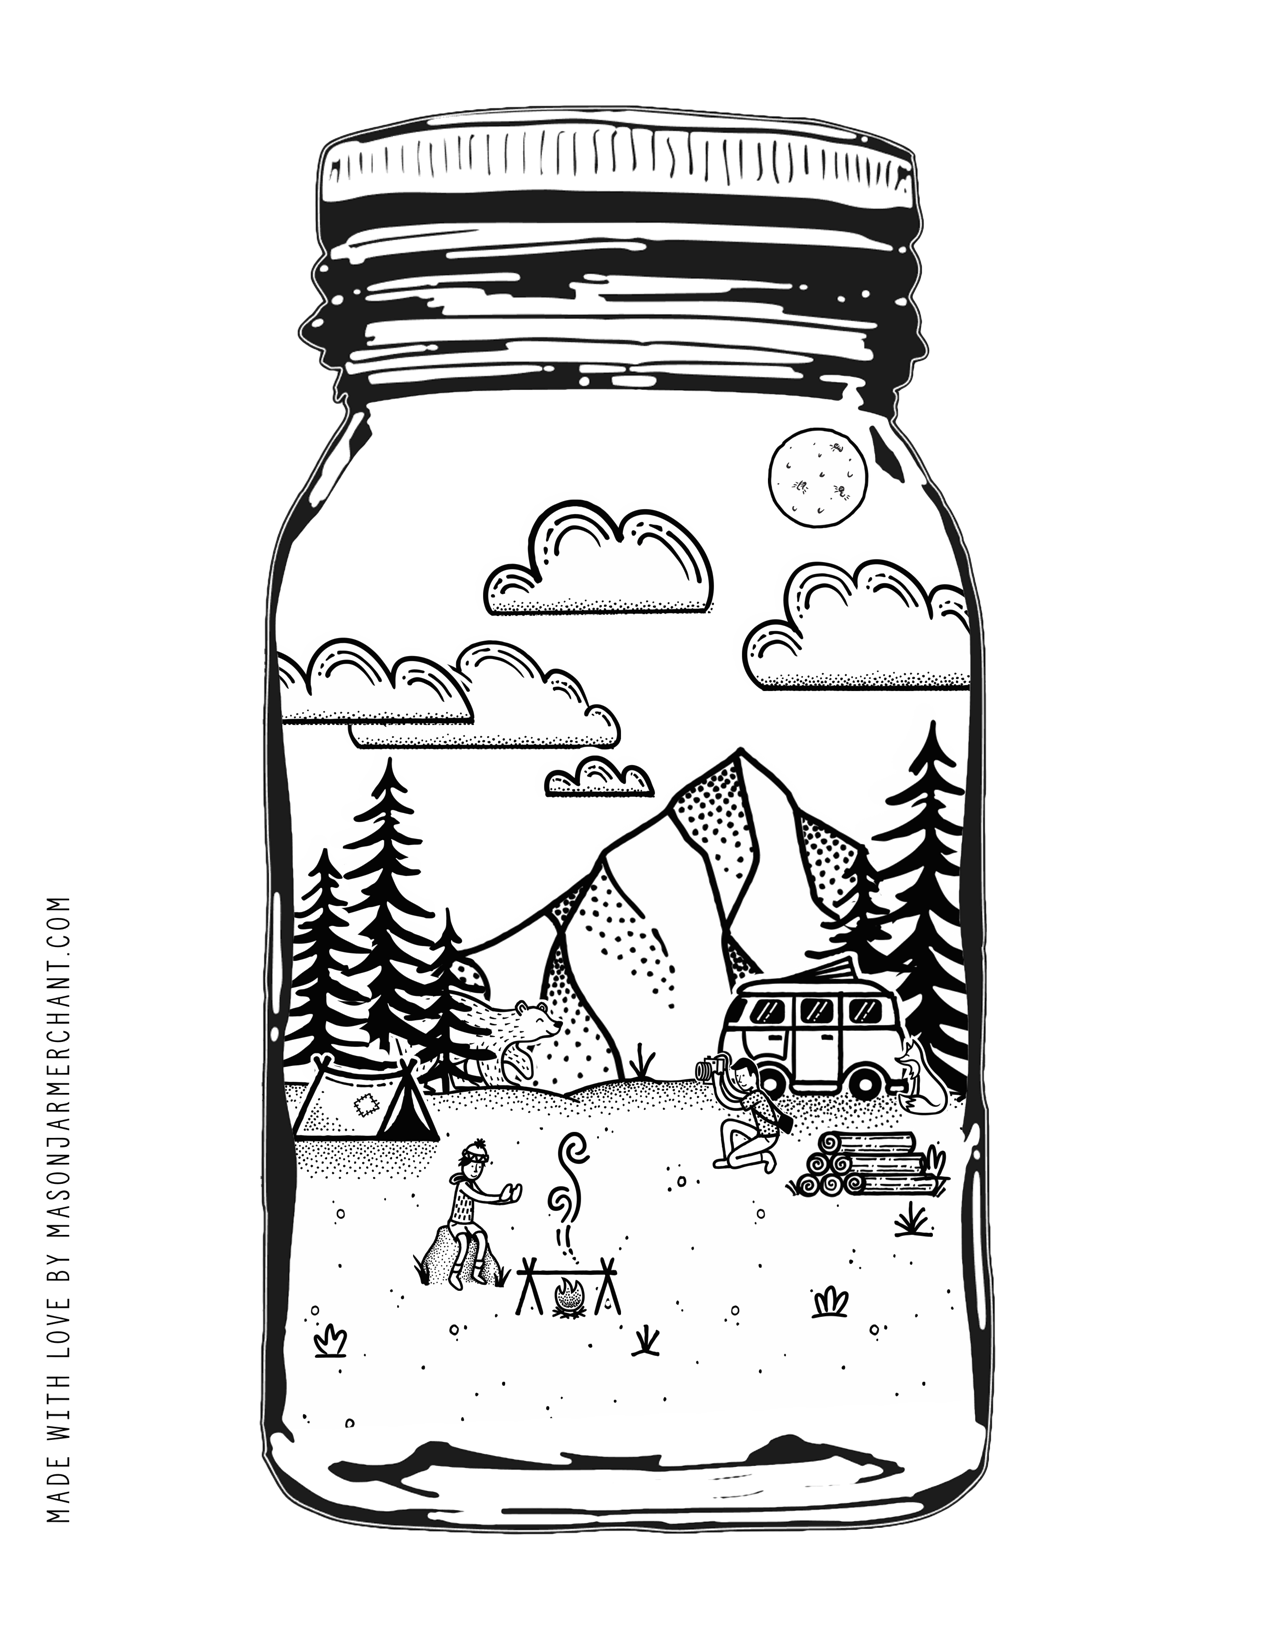 Great Outdoors Free Printable Coloring Pages Free Printable Coloring Printable Coloring Pages Free Printable Coloring Pages